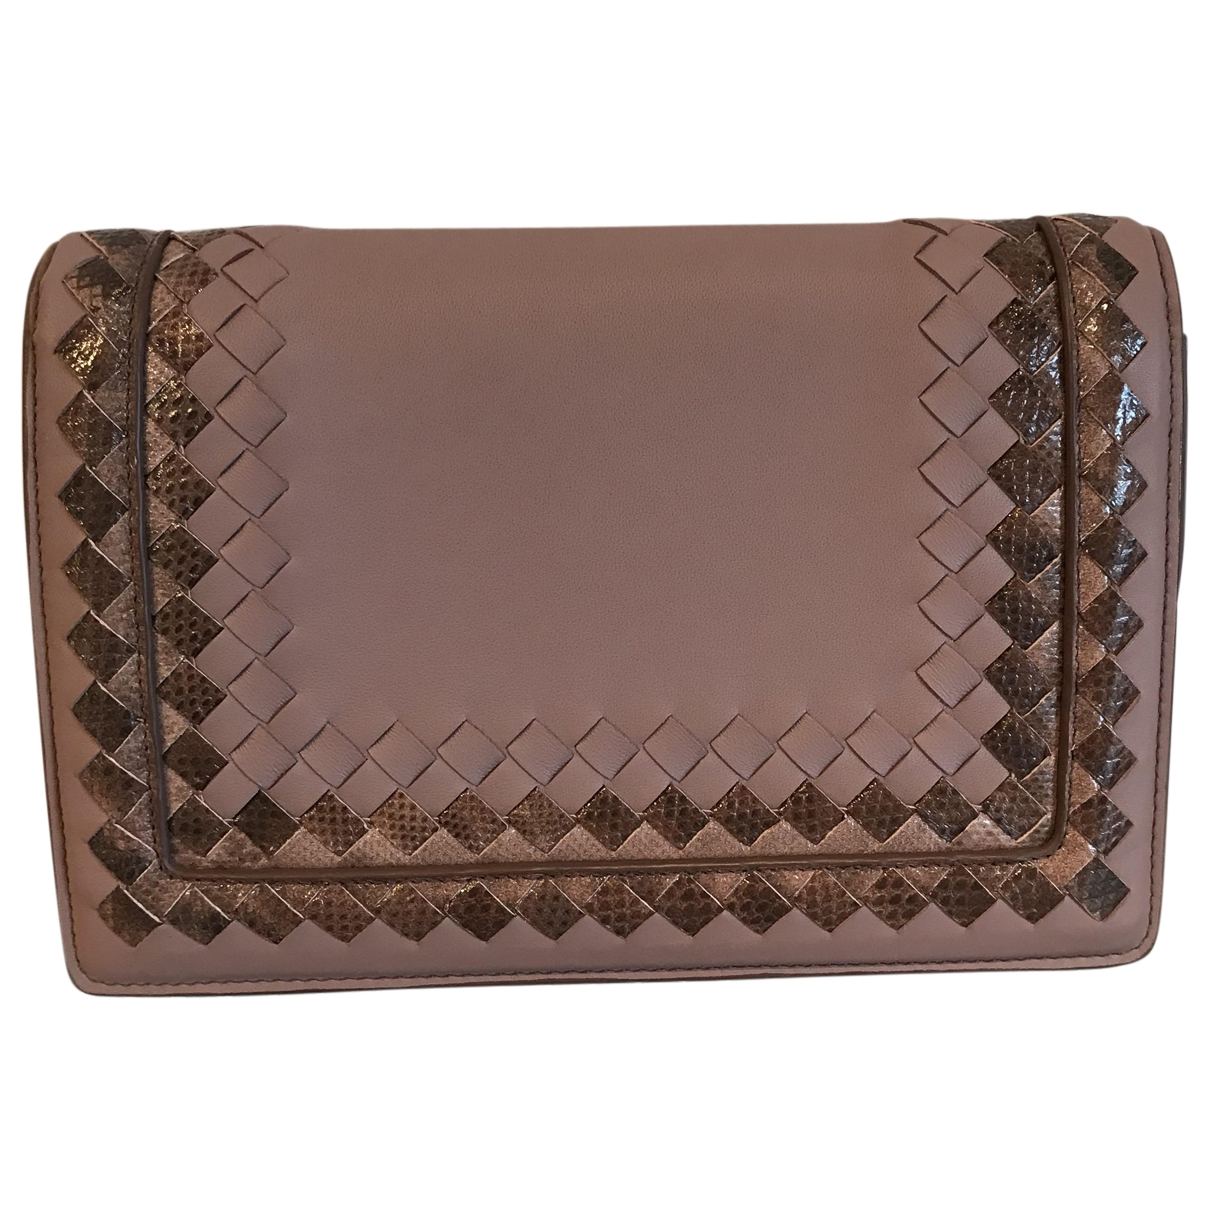 Bottega Veneta \N Pink Leather Clutch bag for Women \N